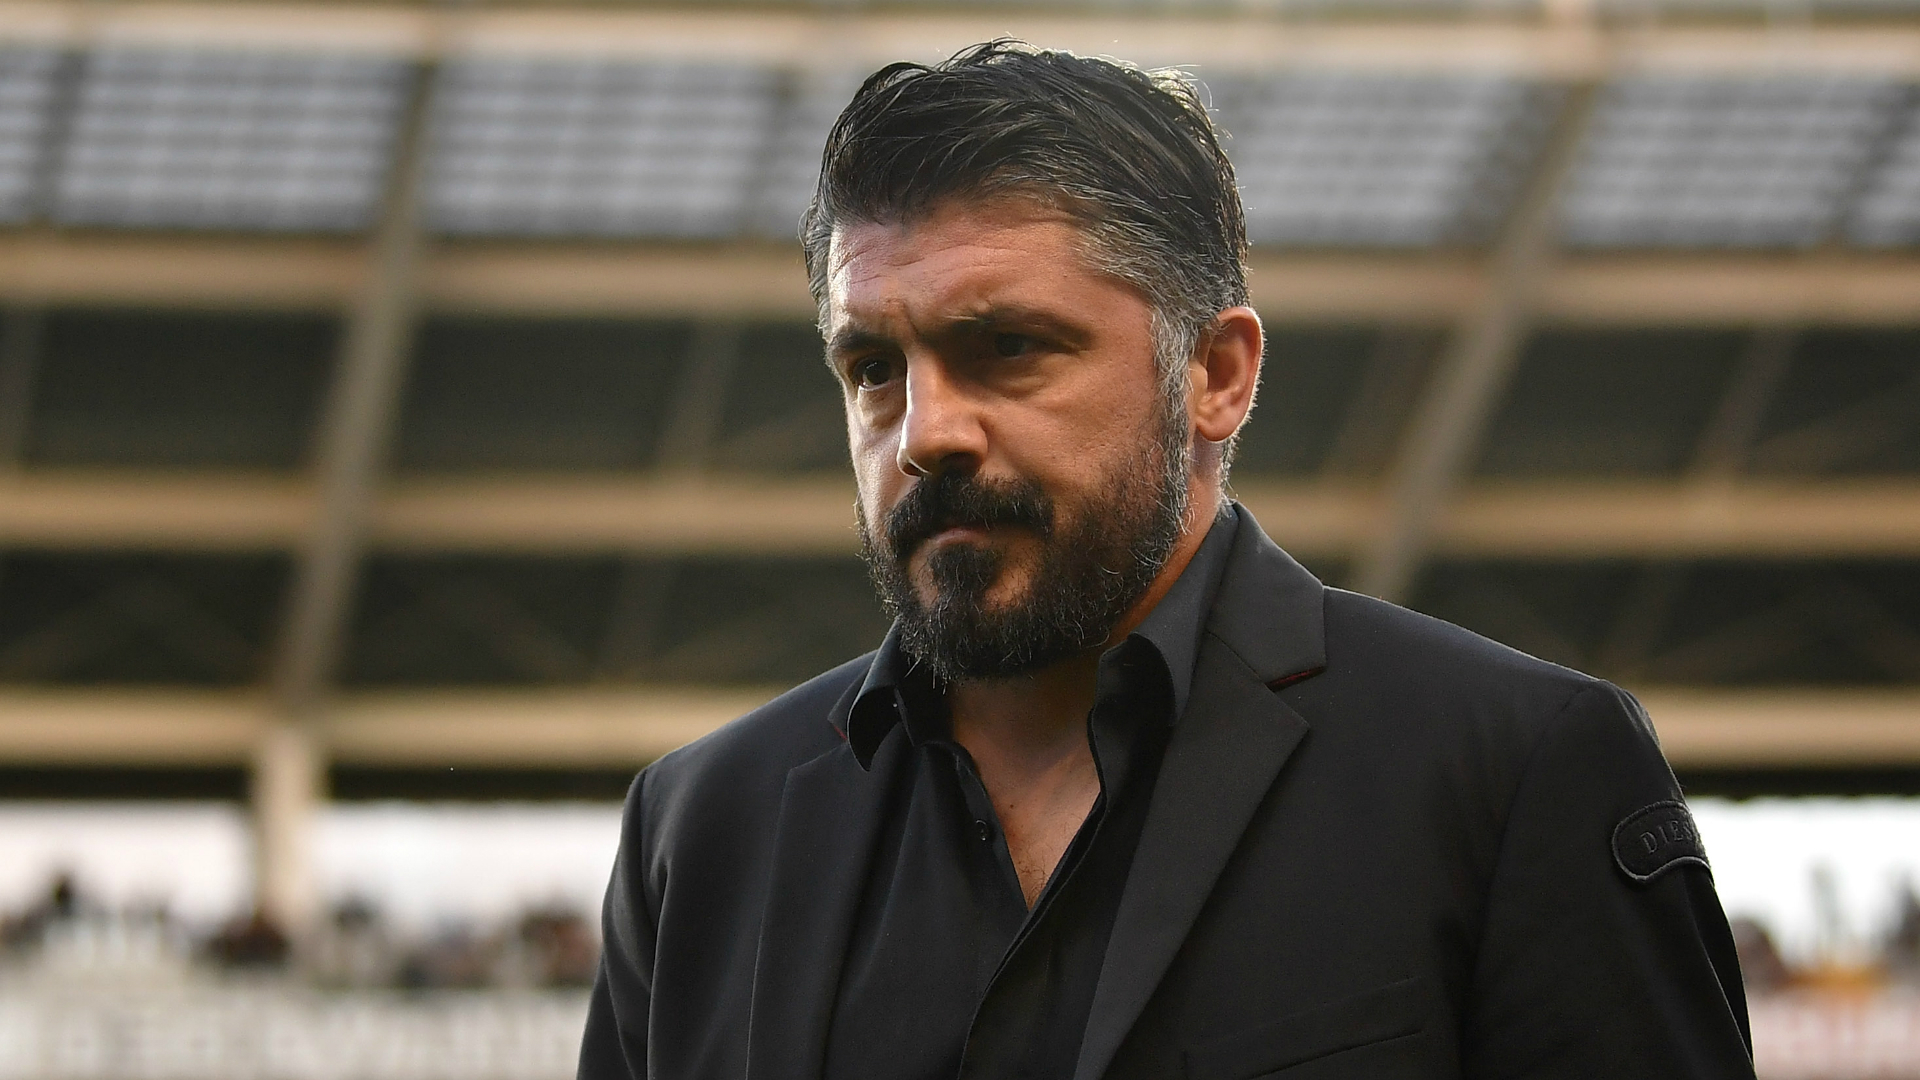 Gattuso: Champions League not imperative for Milan job prospects